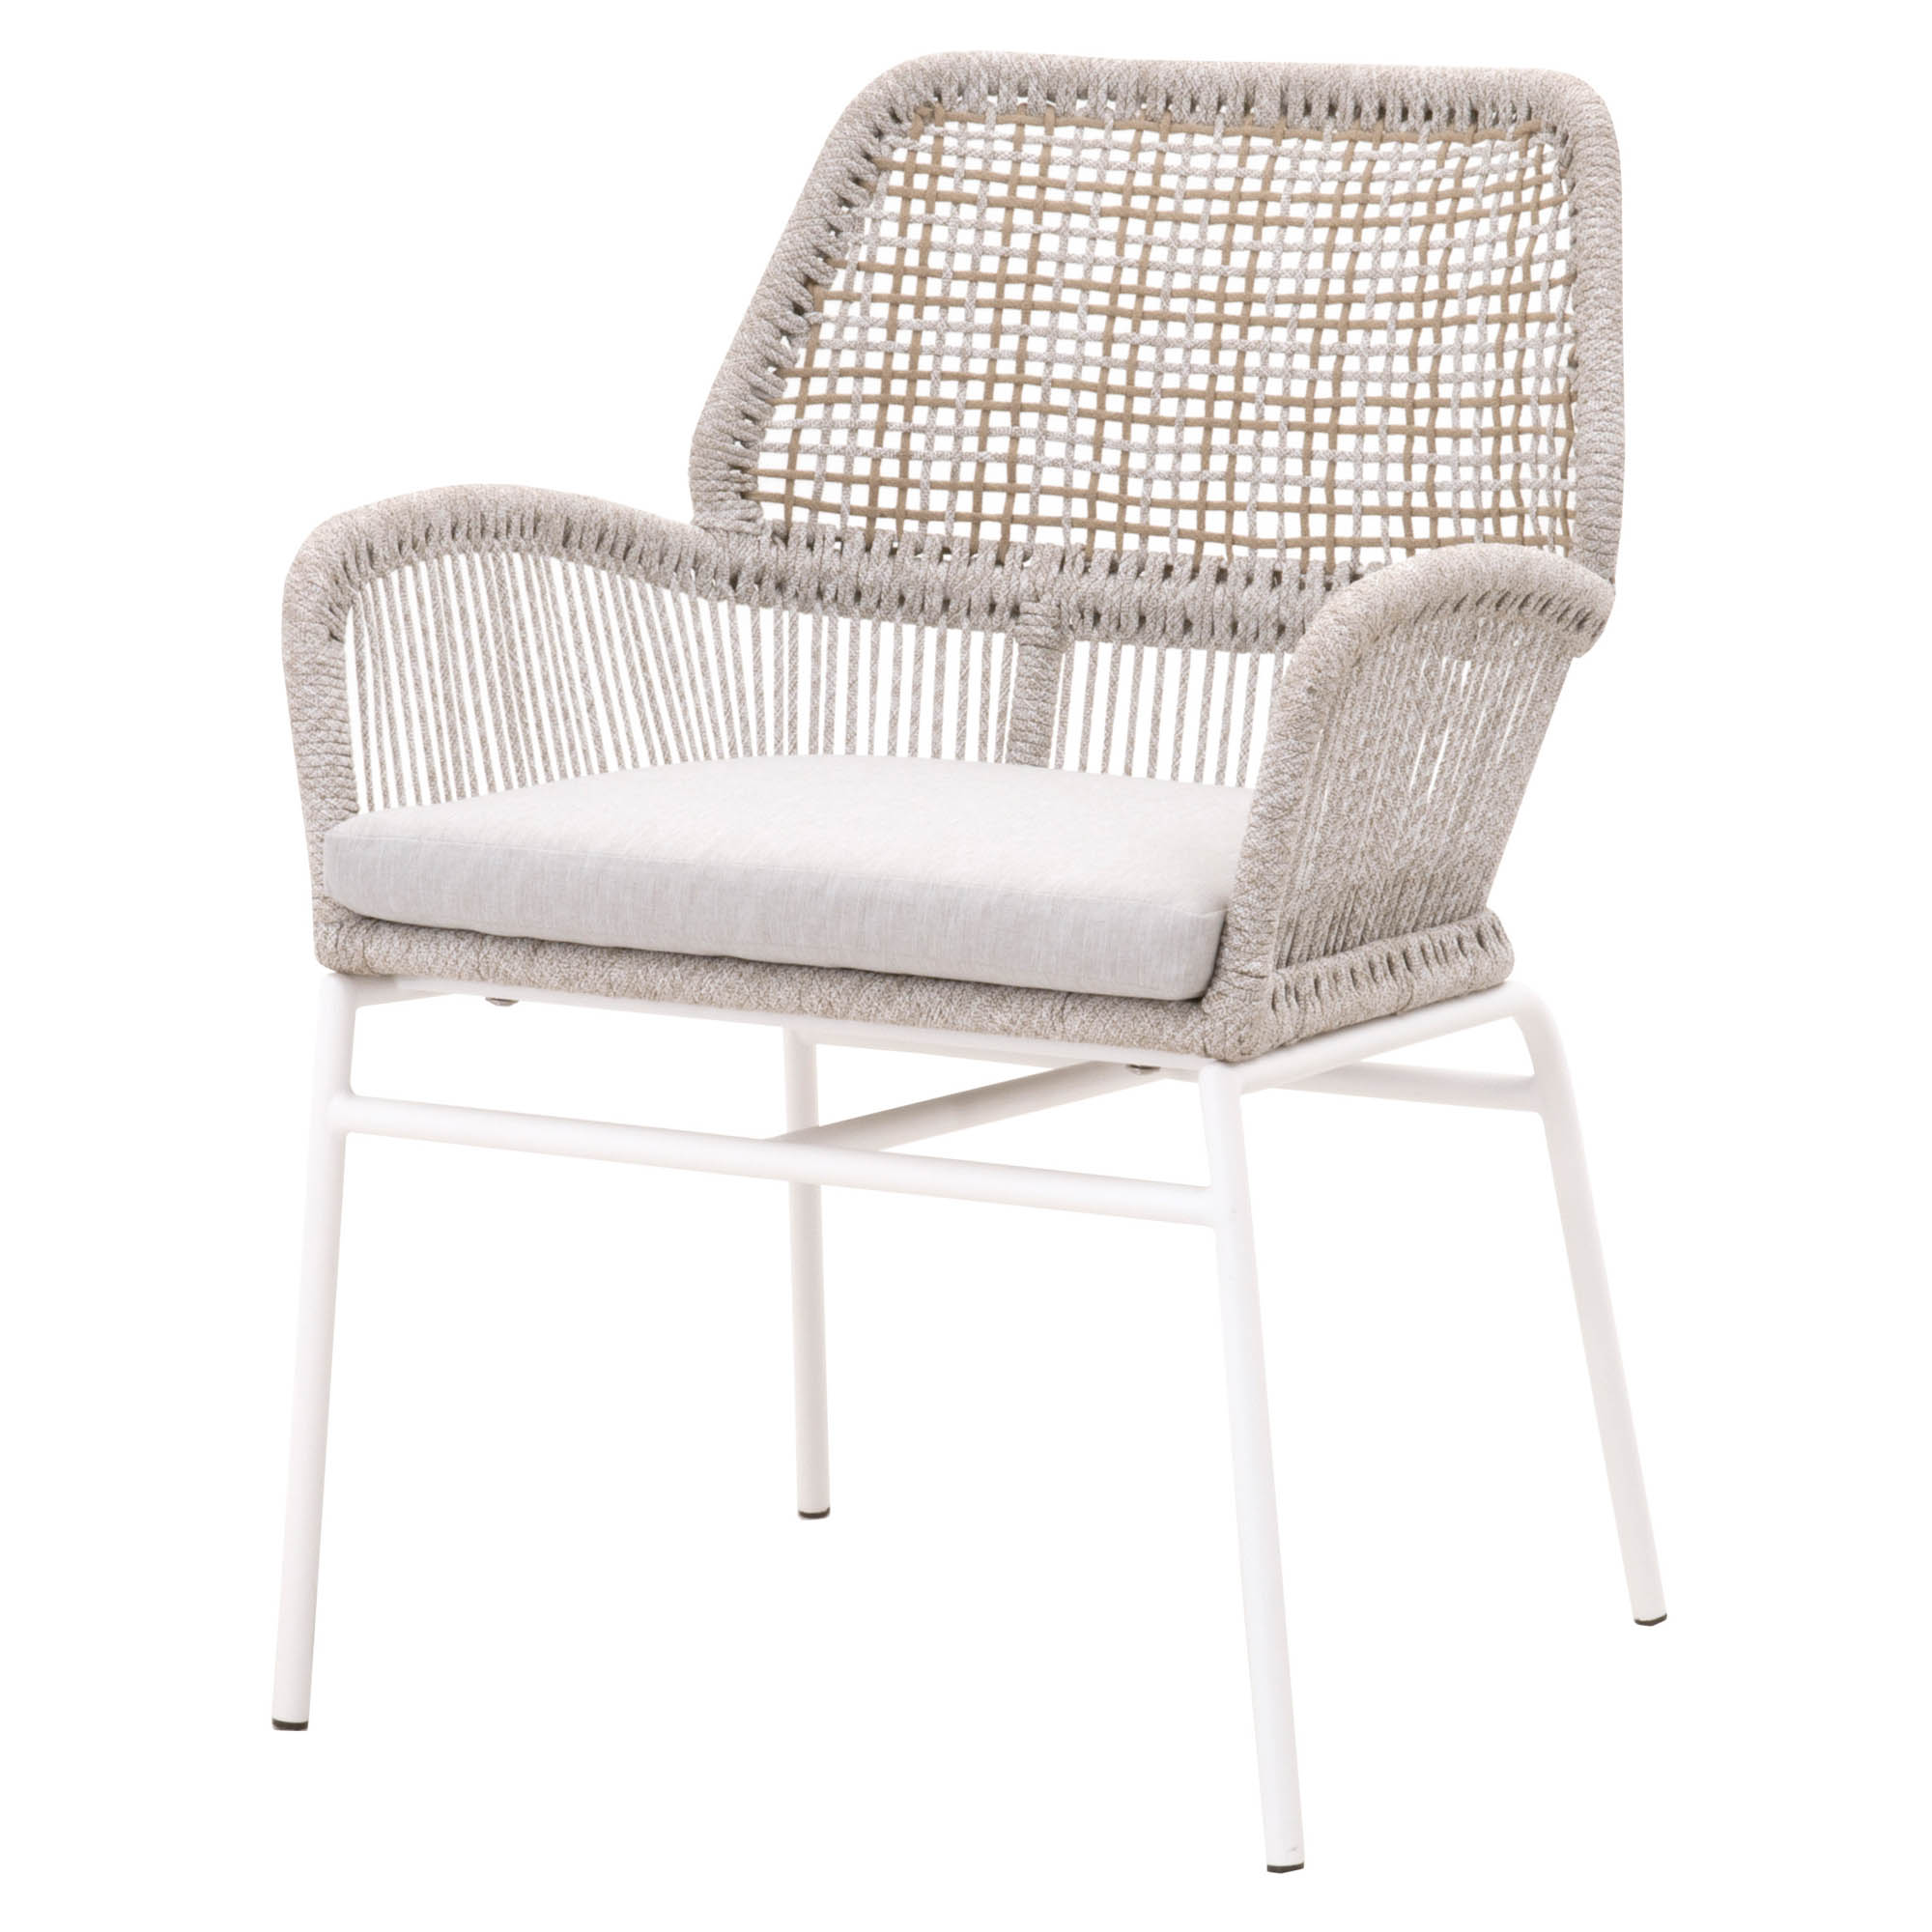 Knit Outdoor Arm Chair - Taupe - 2.jpg